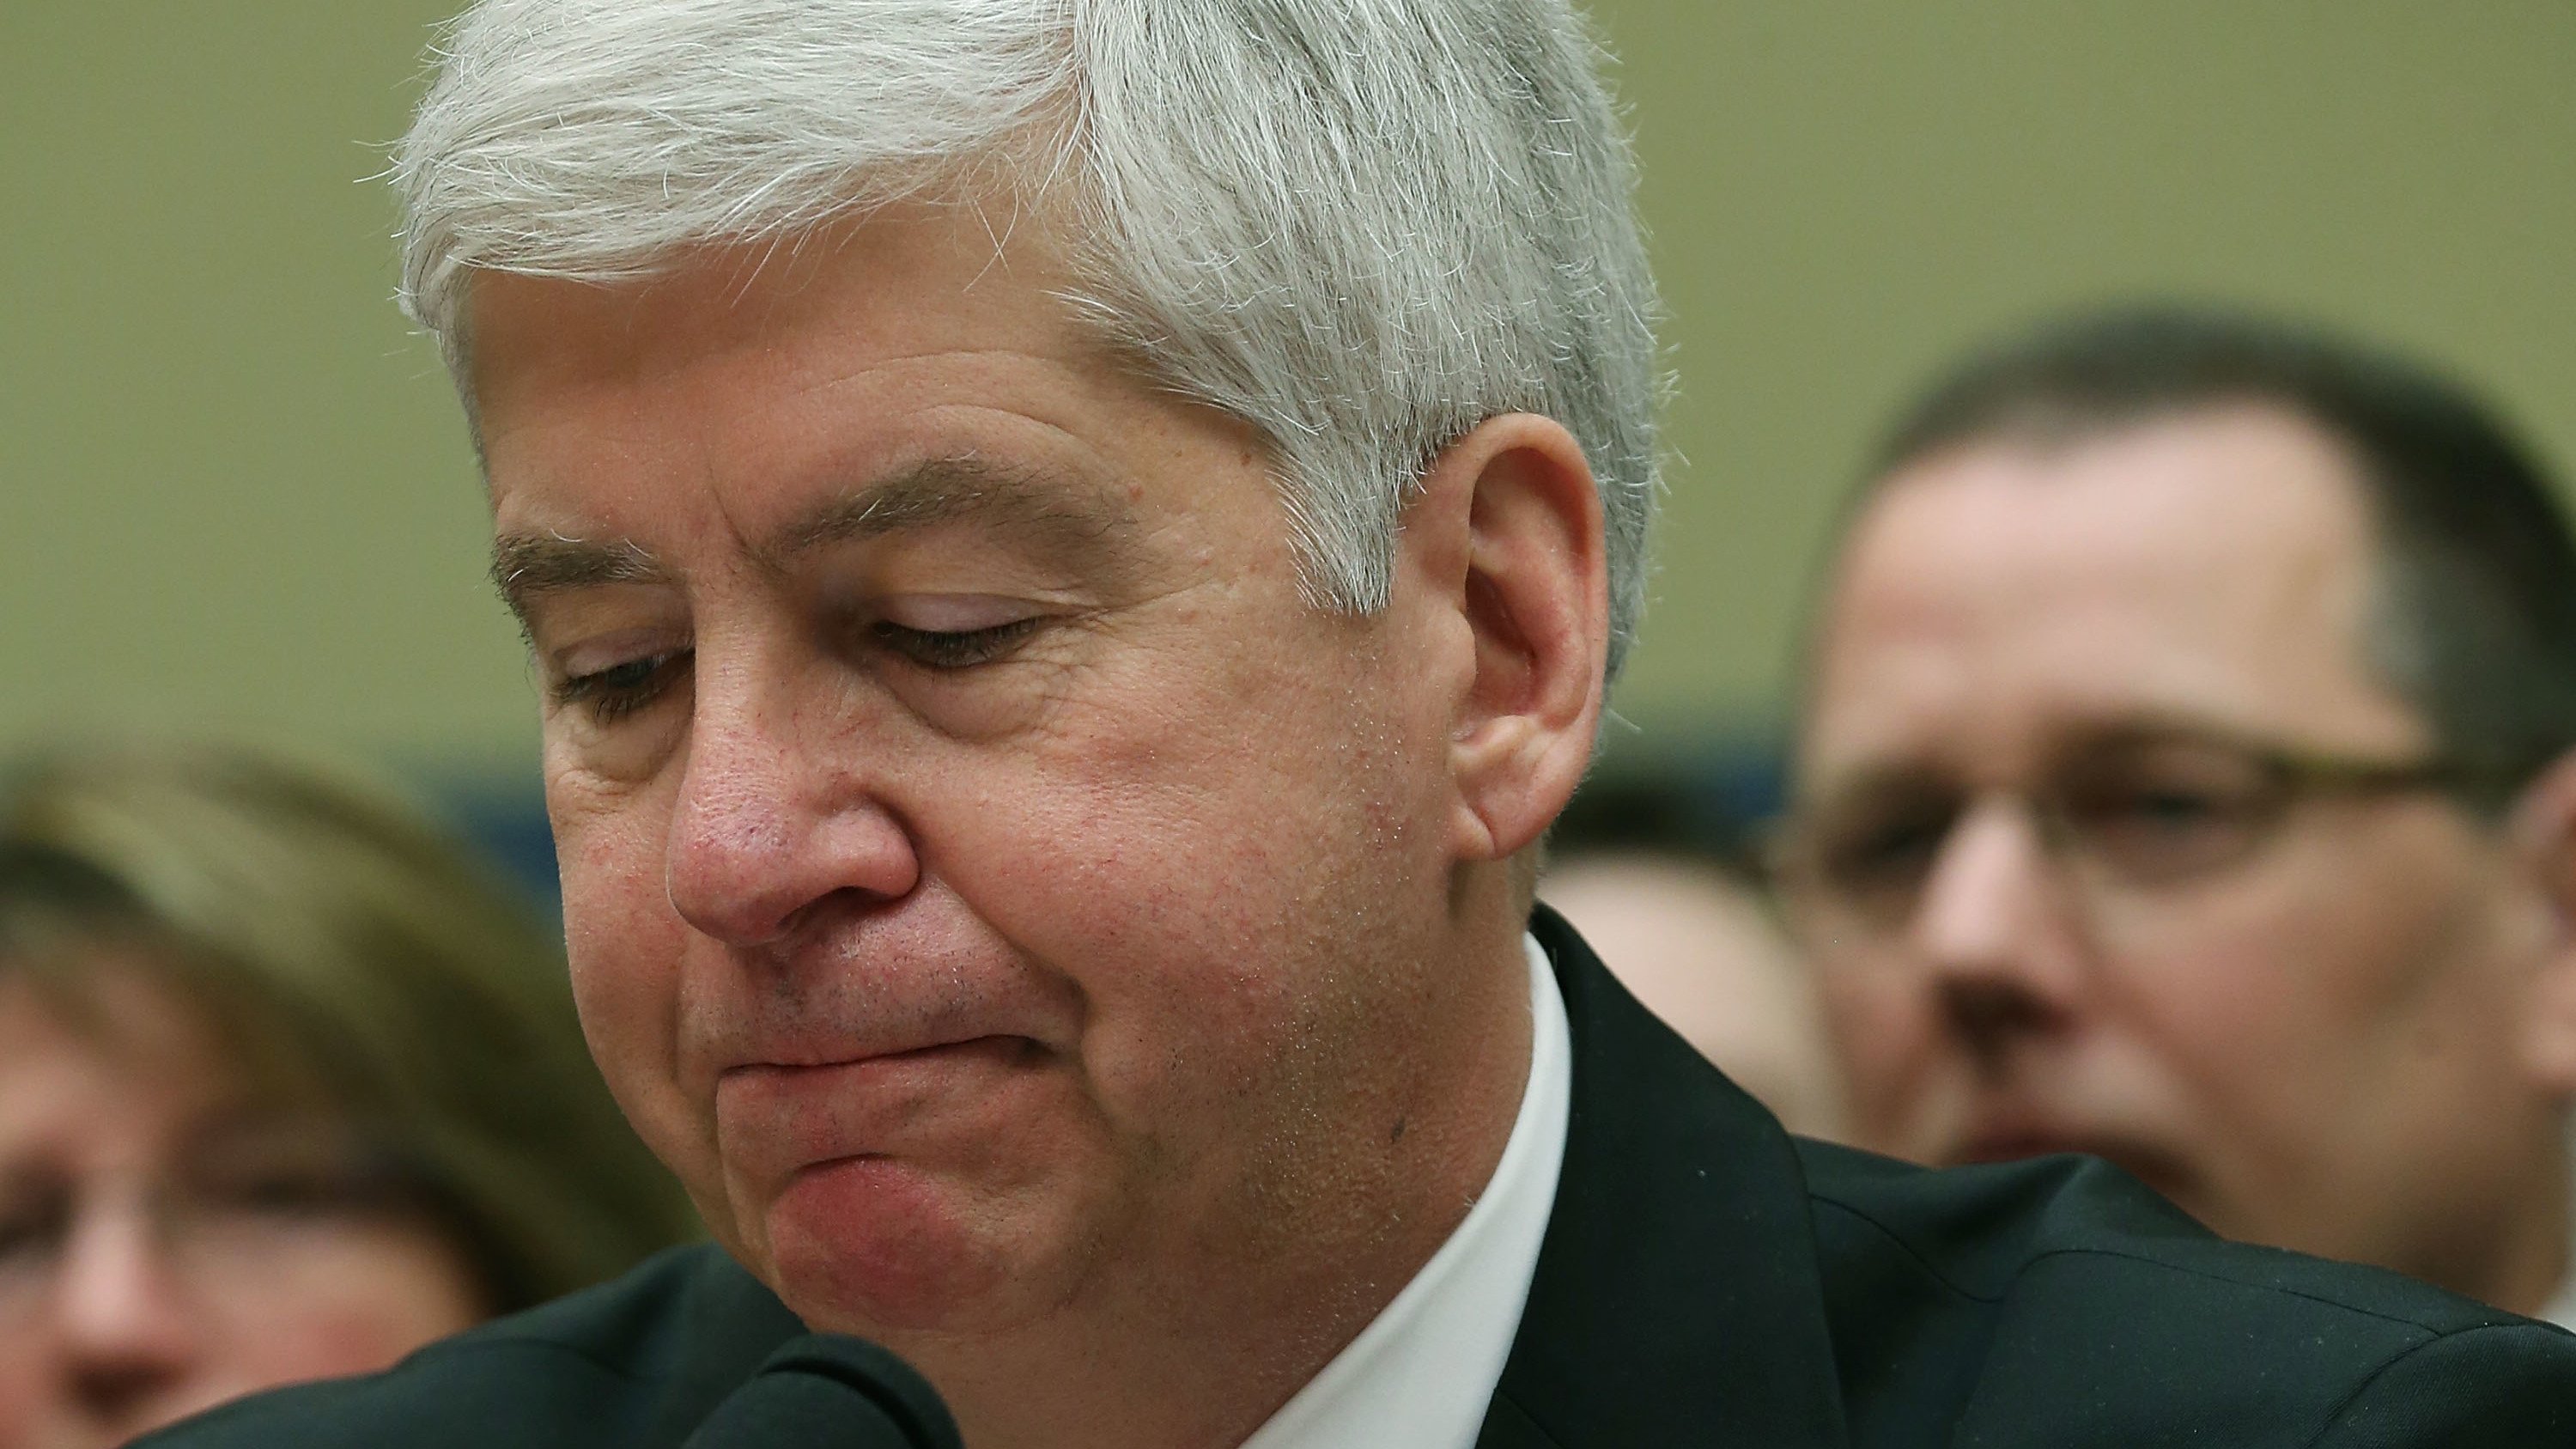 Now Former Michigan Gov. Rick Snyder, (R-MI), listens to Congressional members remarks during a House Oversight and Government Reform Committee hearing, about the Flint, Mich. water crisis in 2016.